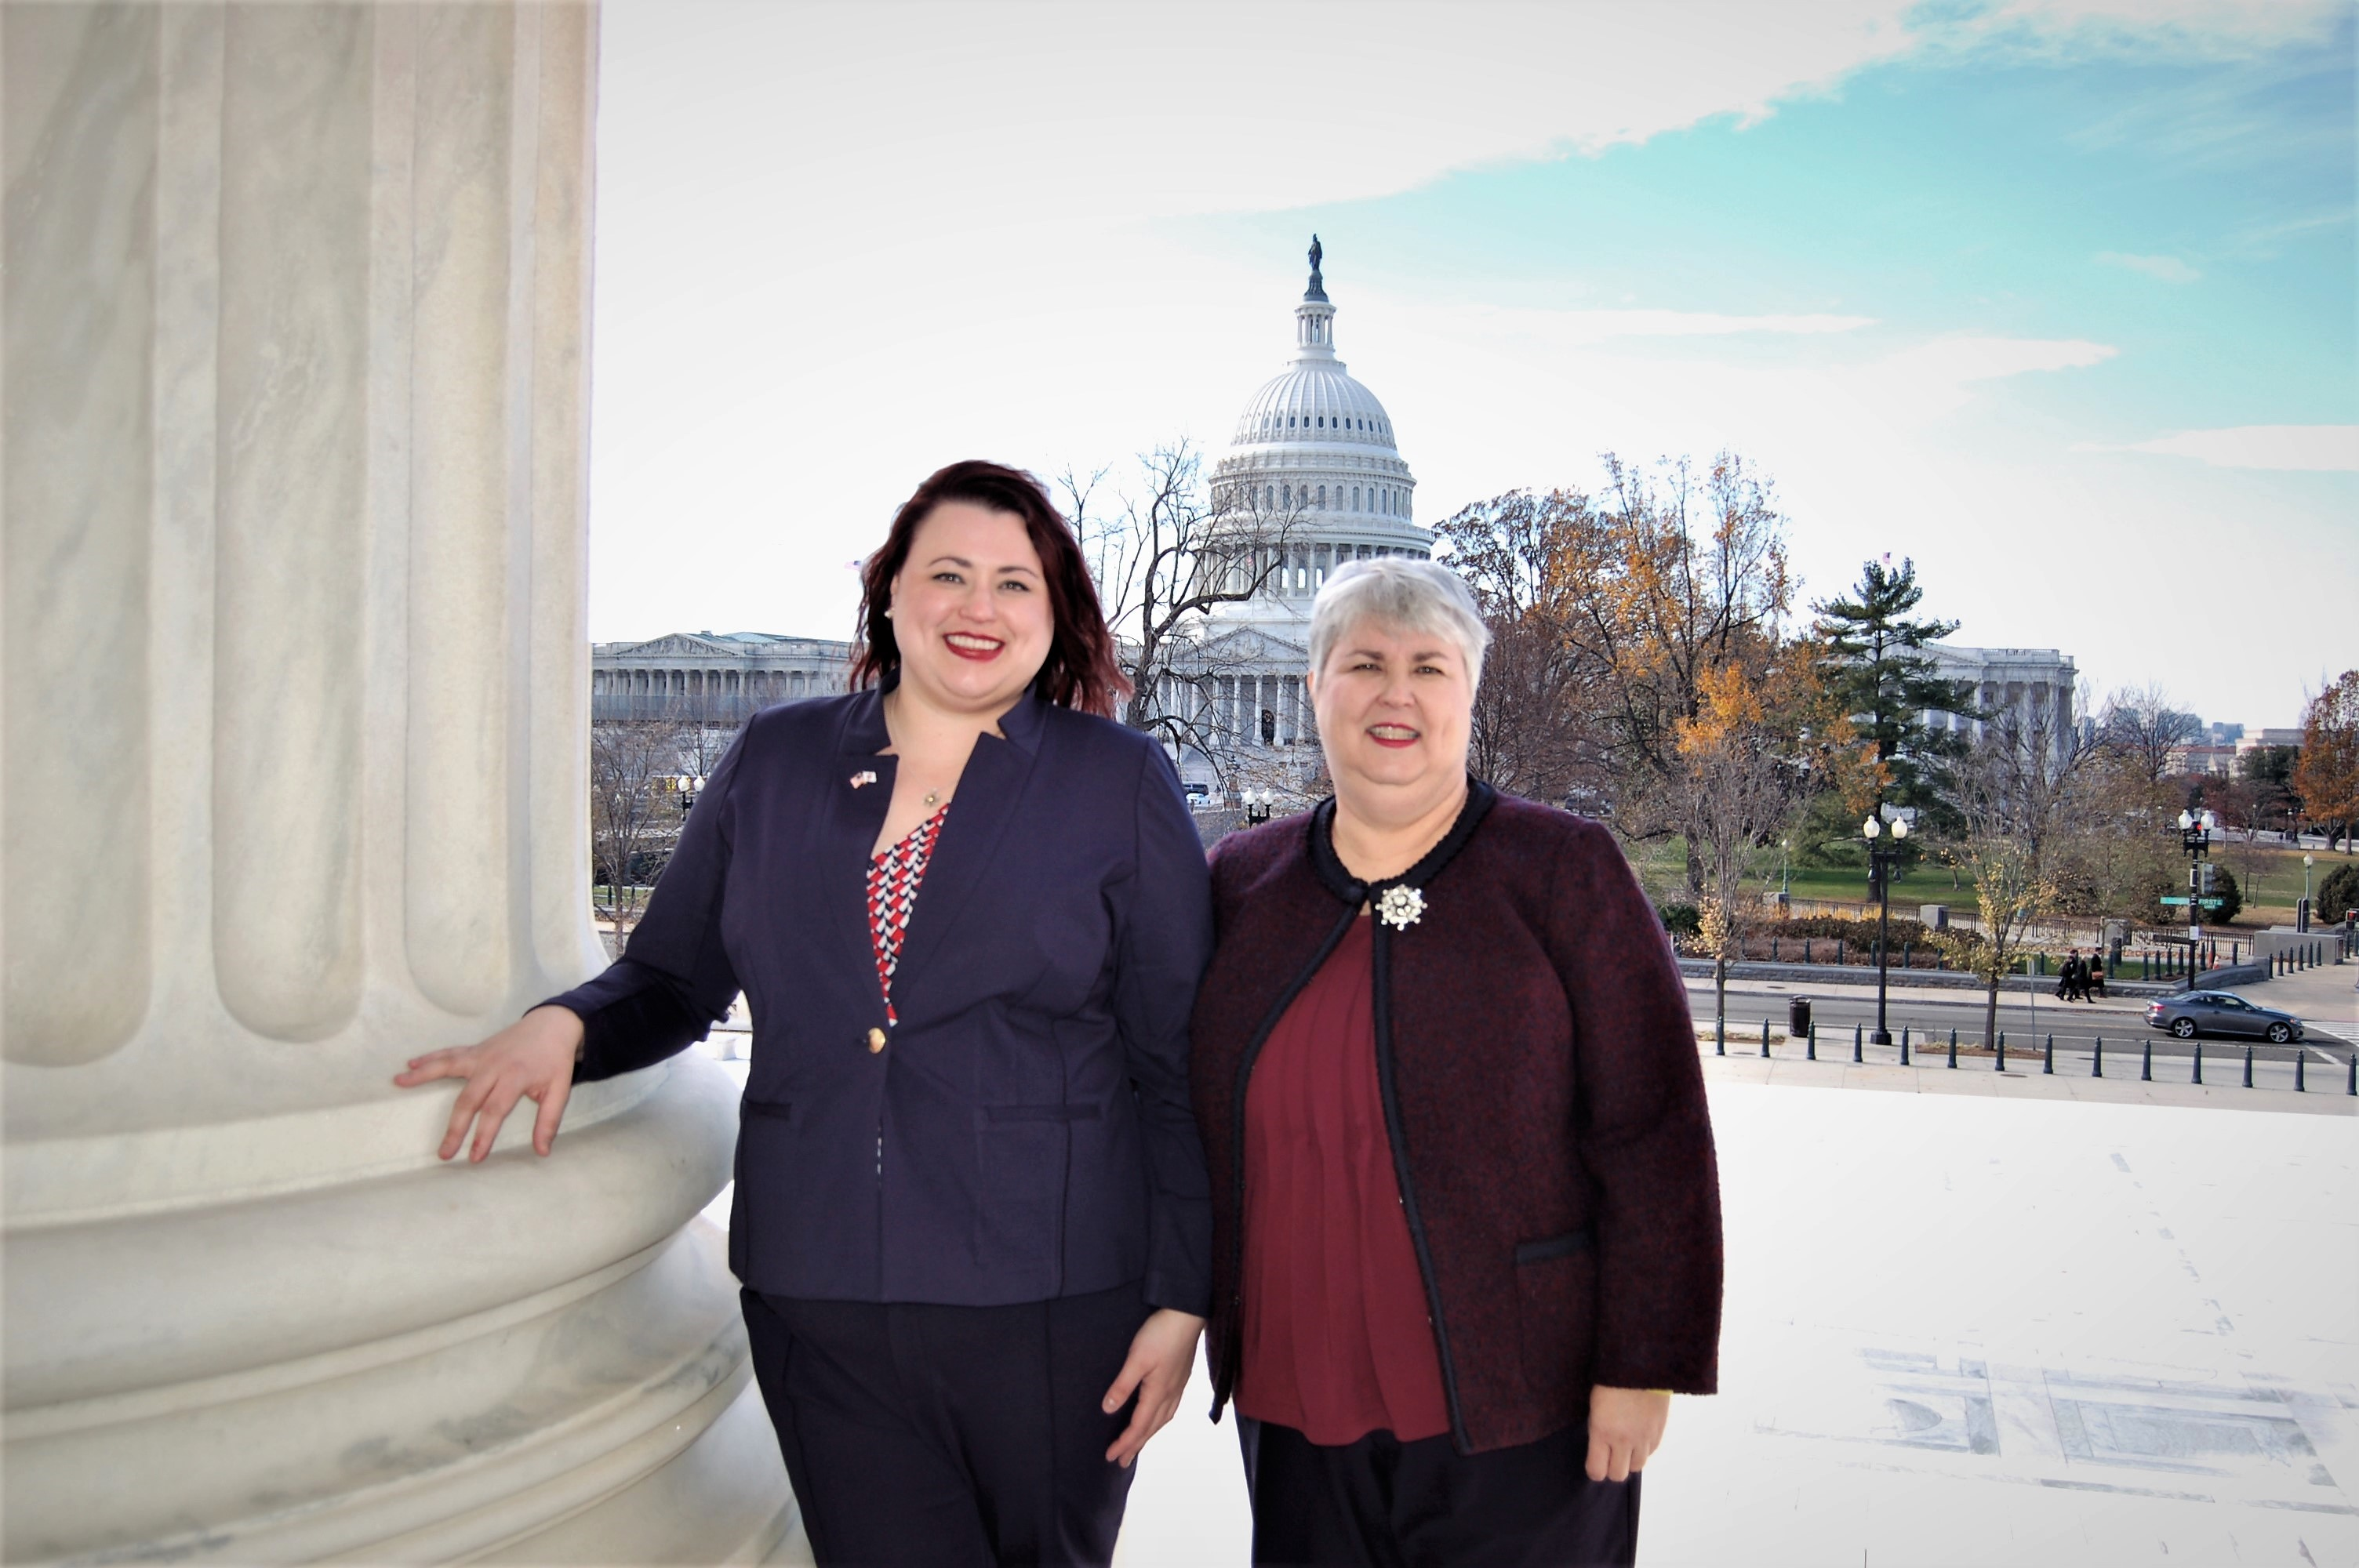 Donna J. Bays and Jennifer Bays Beinart after their admission to the US Supreme Court